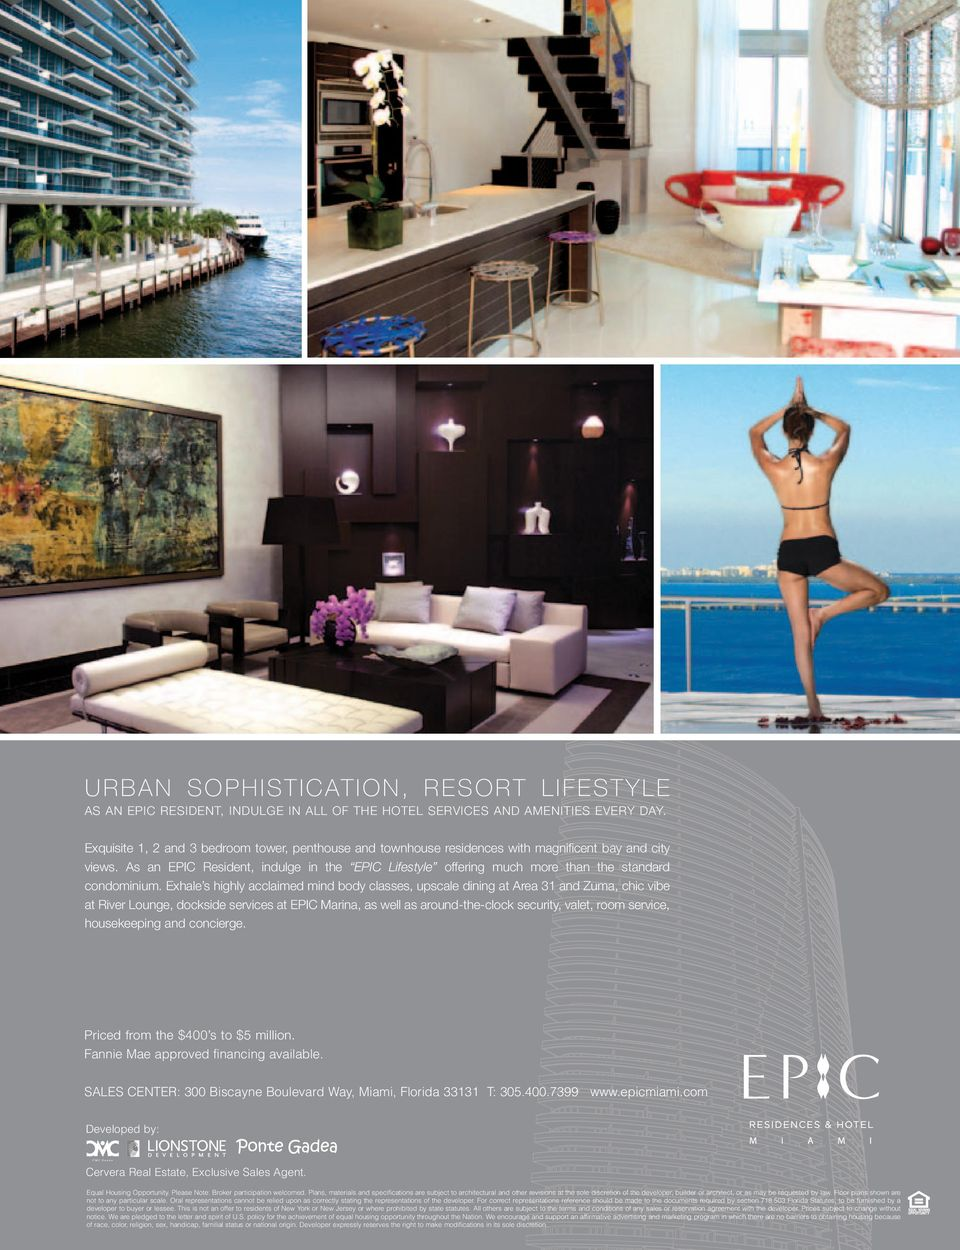 As an EPIC Resident, indulge in the EPIC Lifestyle offering much more than the standard condominium.